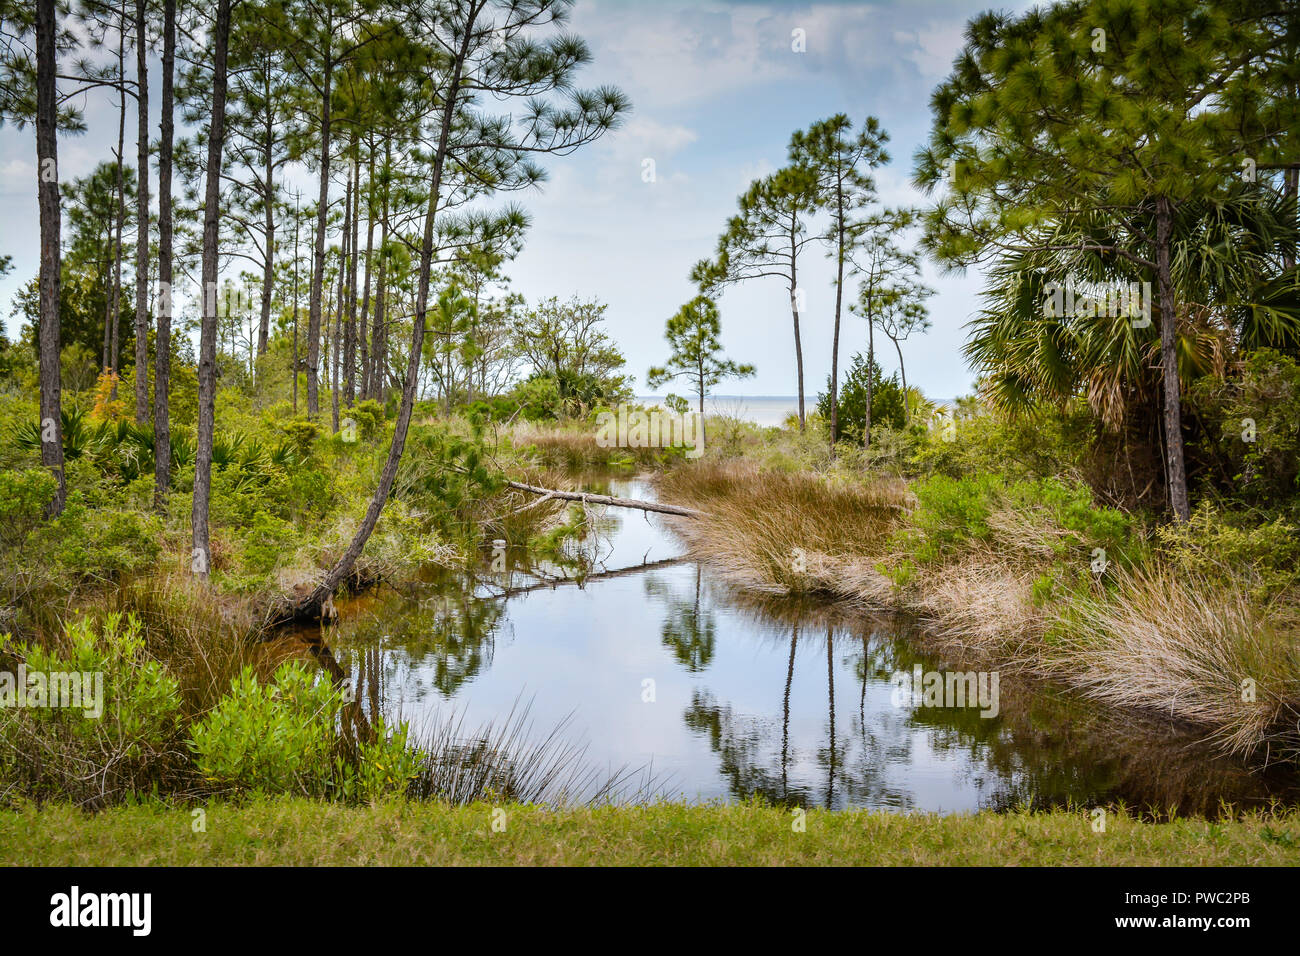 Beautiful view of pines and palms and marshlands along the coastal ways of the Apalachicola Bay in the Panhandle of Florida, USA - Stock Image